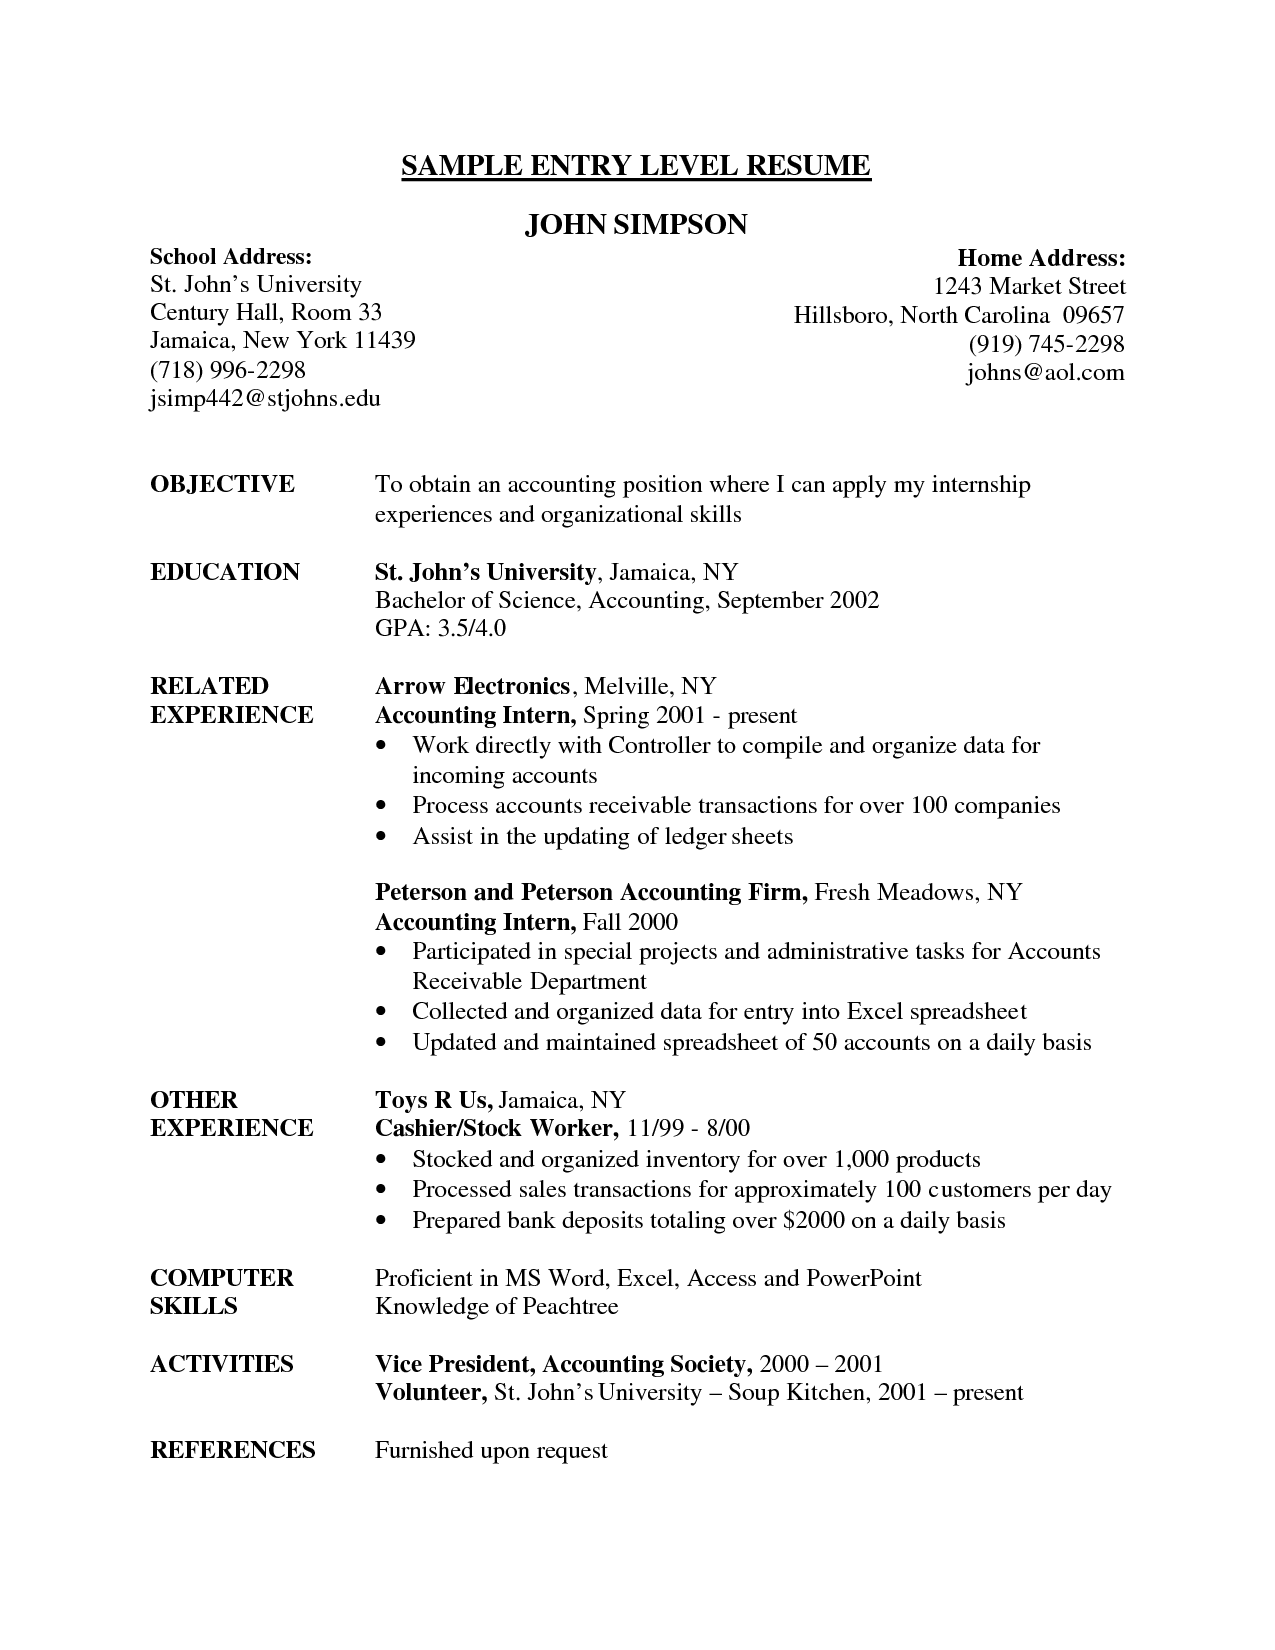 example of resume profile entry level httpwwwresumecareerinfo - Resume Profile Template